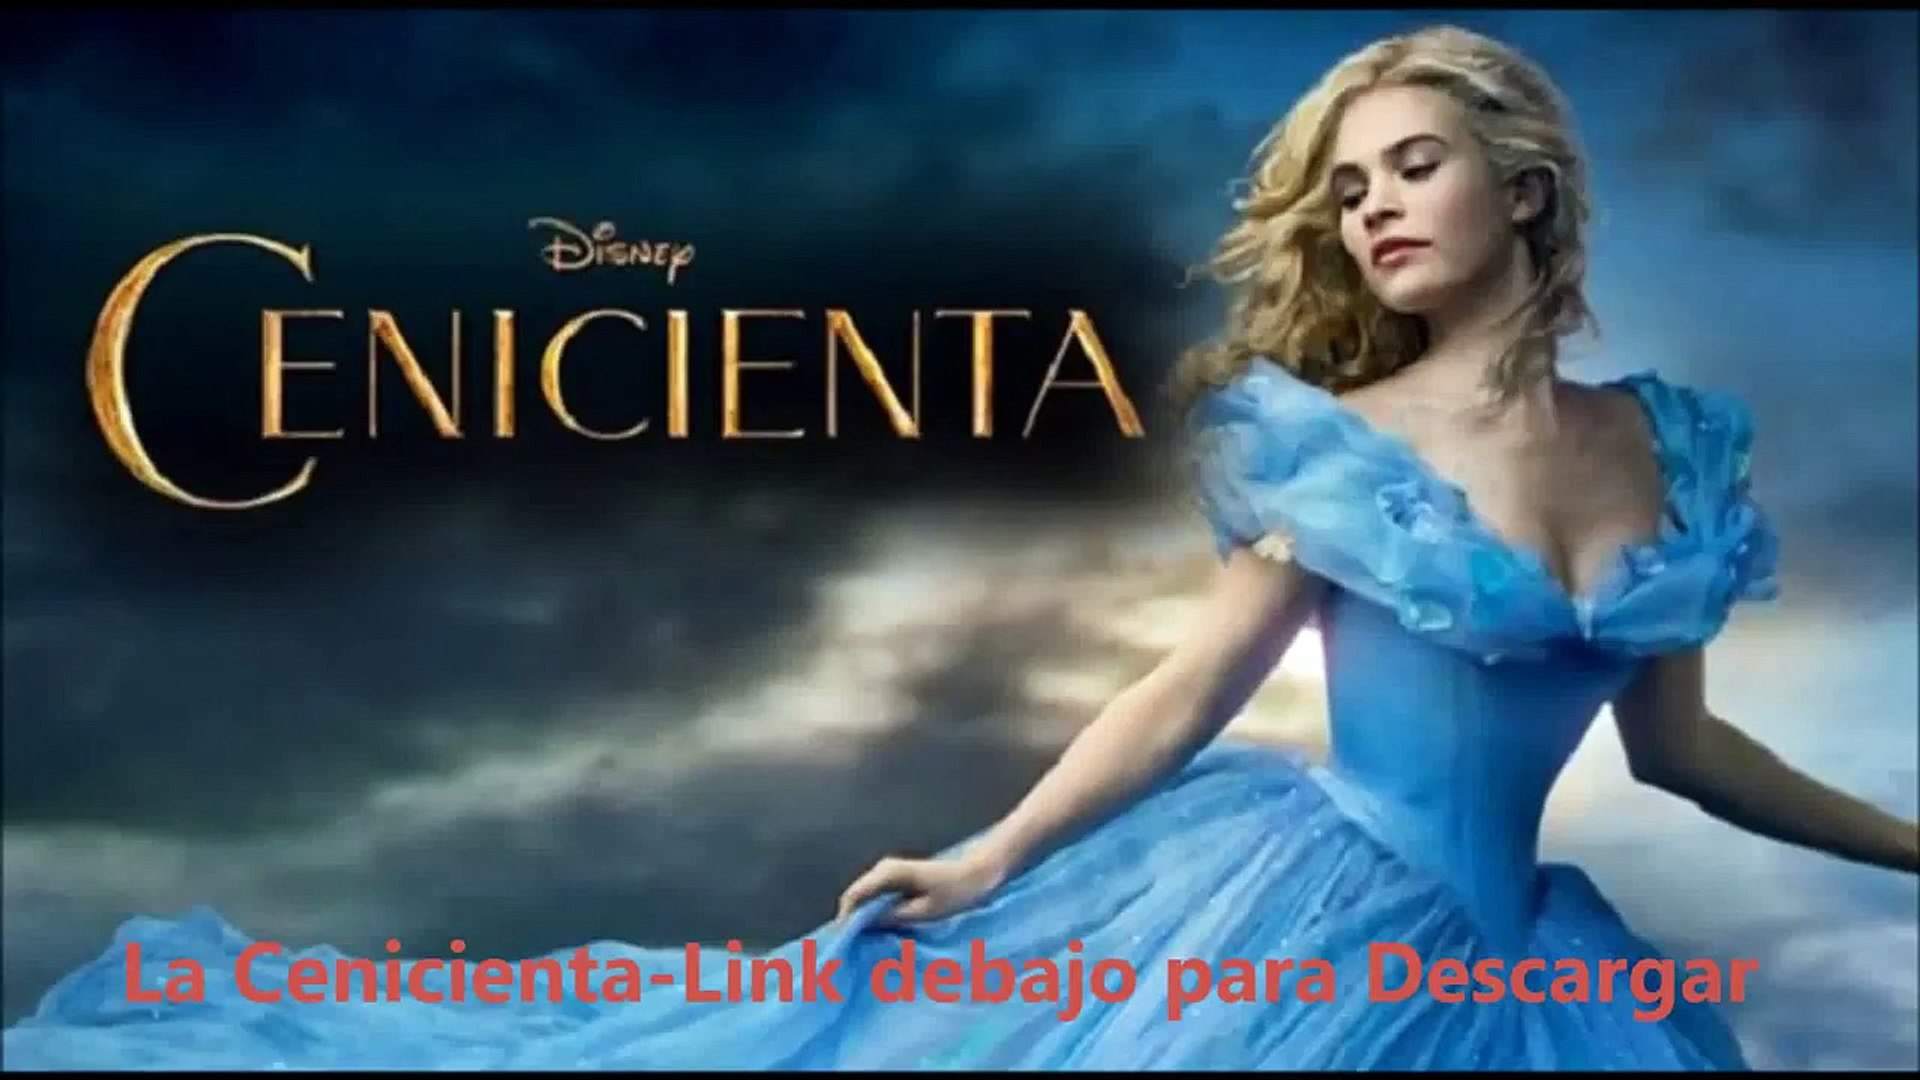 La Cenicienta 2015 Pelicula Completa Vídeo Dailymotion